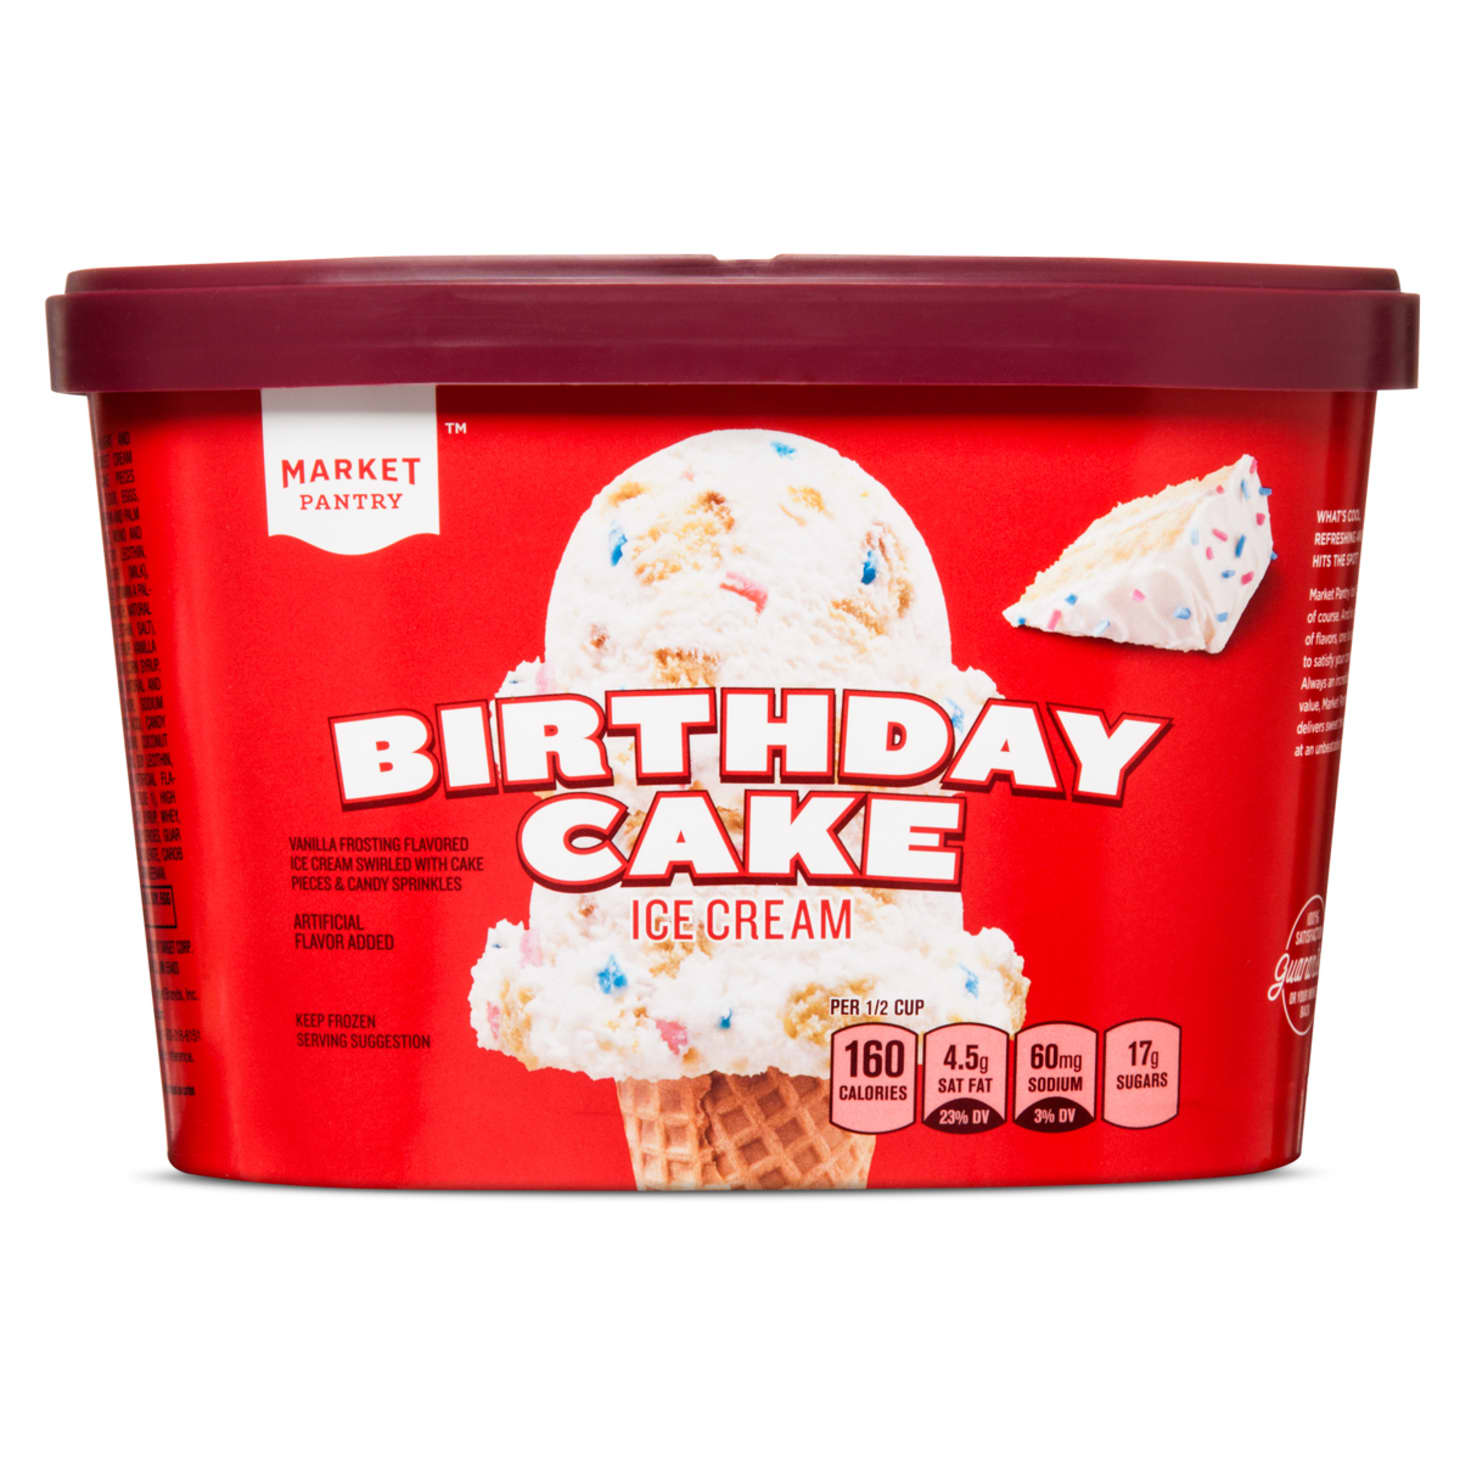 Terrific Best Ice Cream At Target Market Pantry Kitchn Funny Birthday Cards Online Alyptdamsfinfo